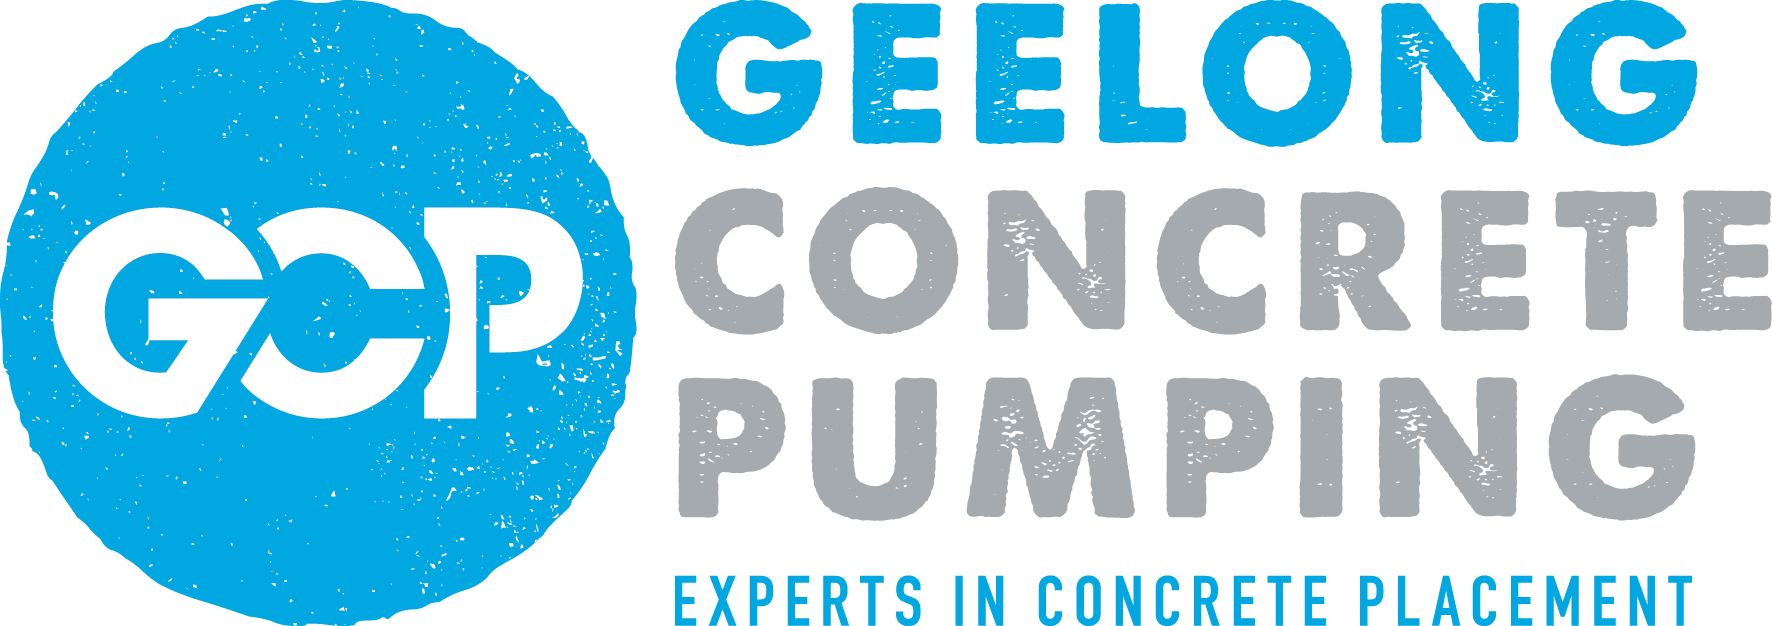 Geelong-Concrete-Pumping-Logo